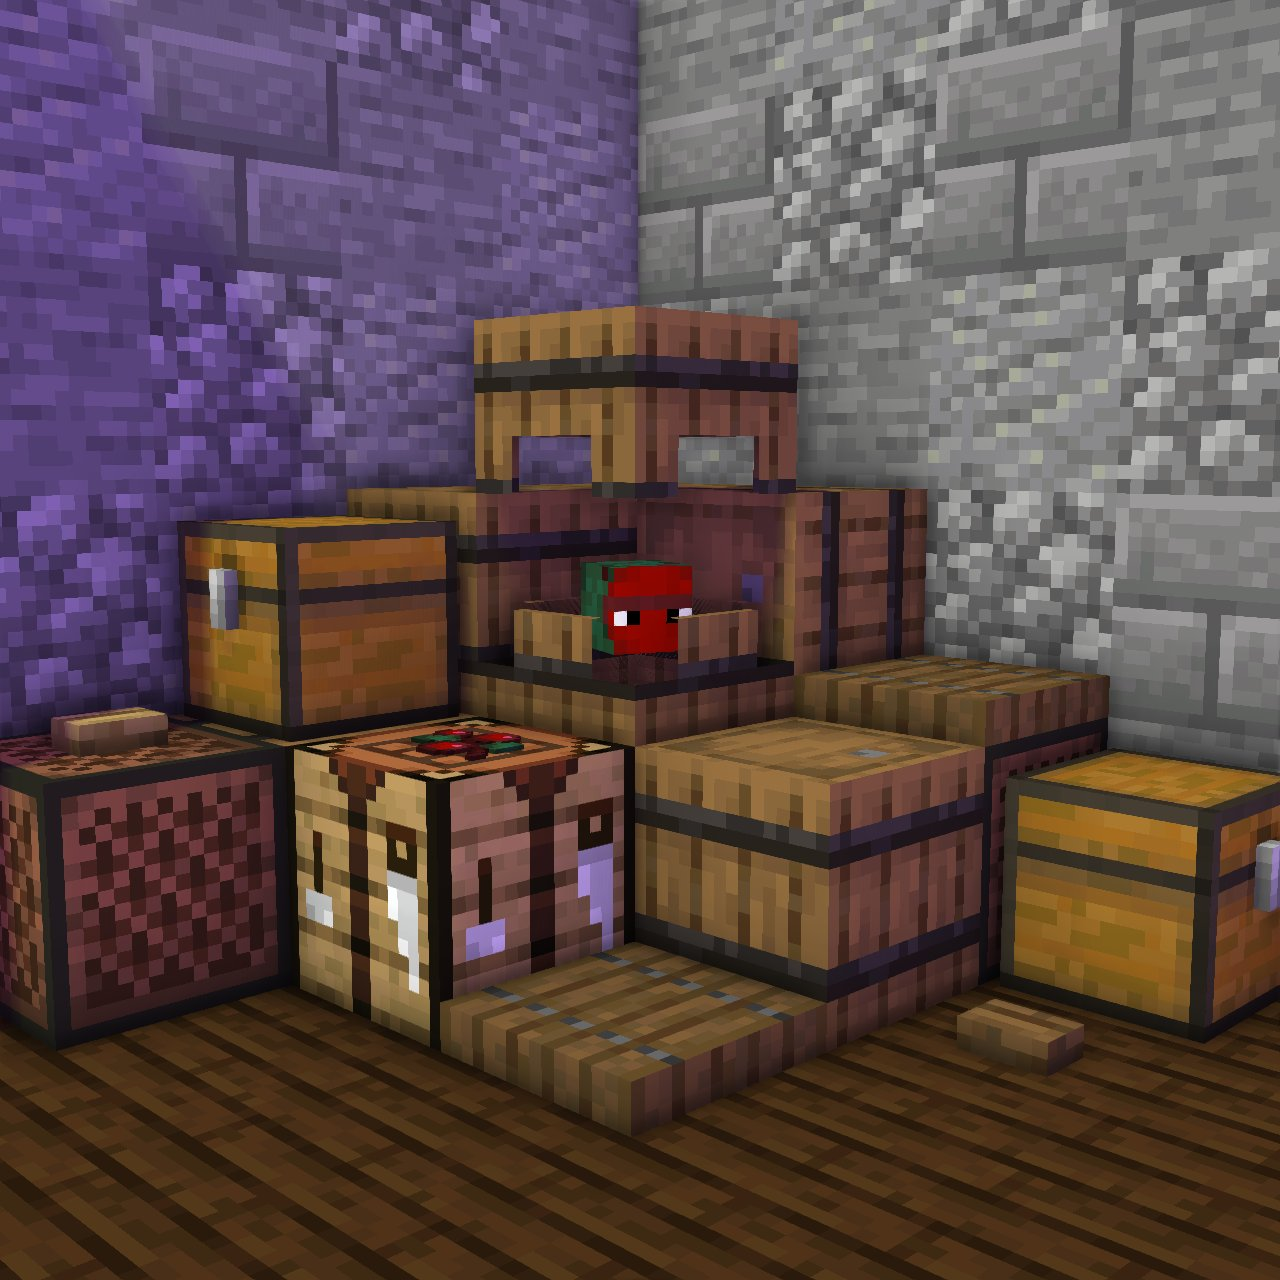 Barrel with Berries (Shulker) Minecraft Mob Skin